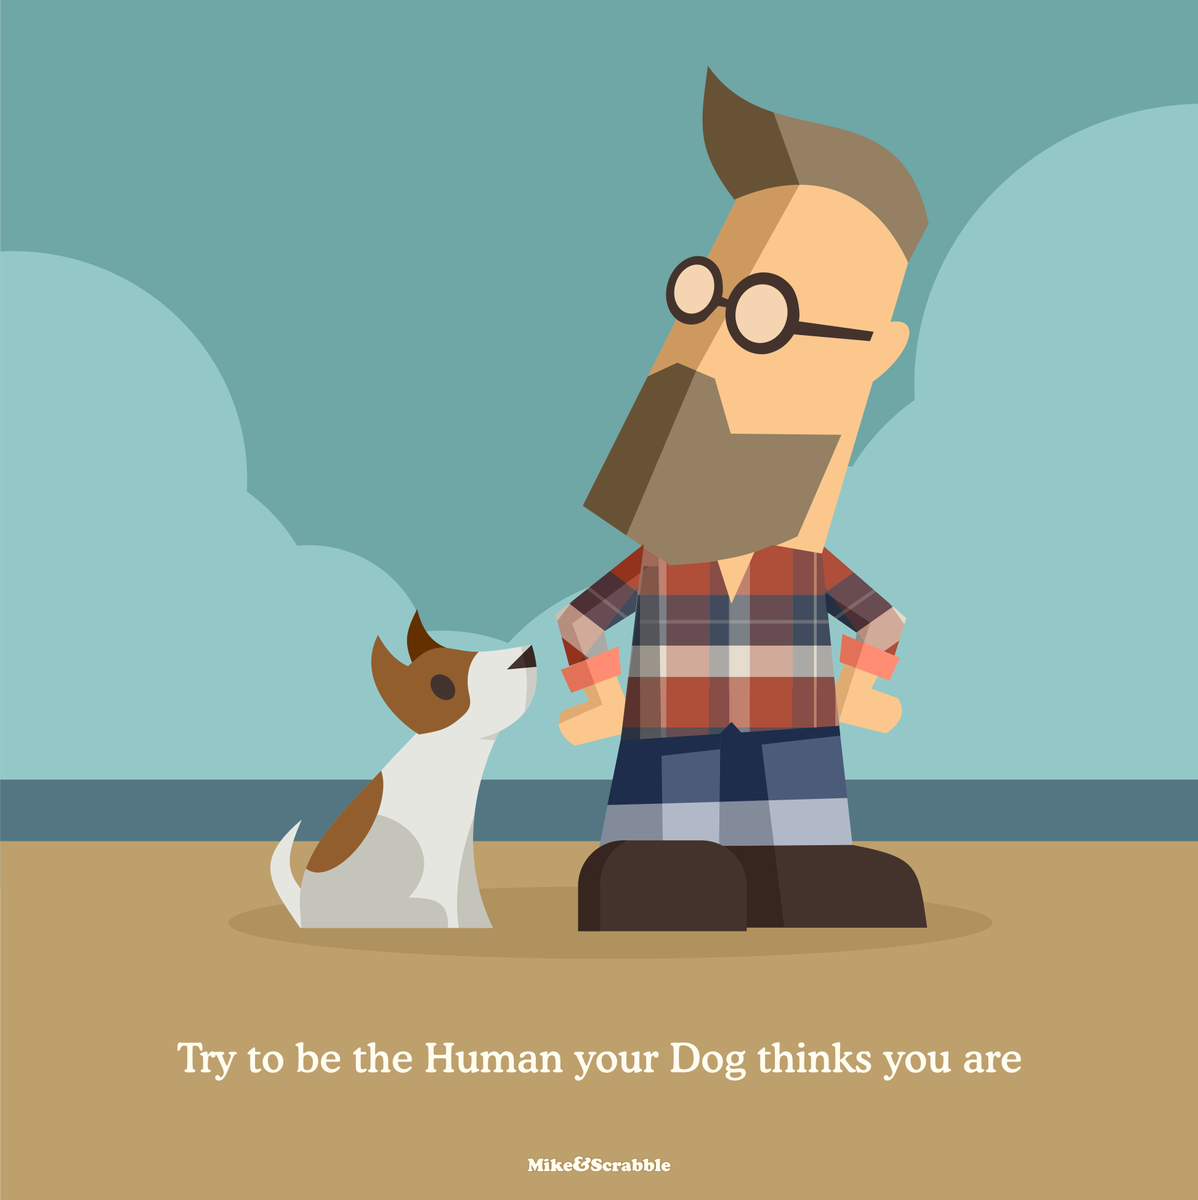 Try to be the Human your Dog thinks you are